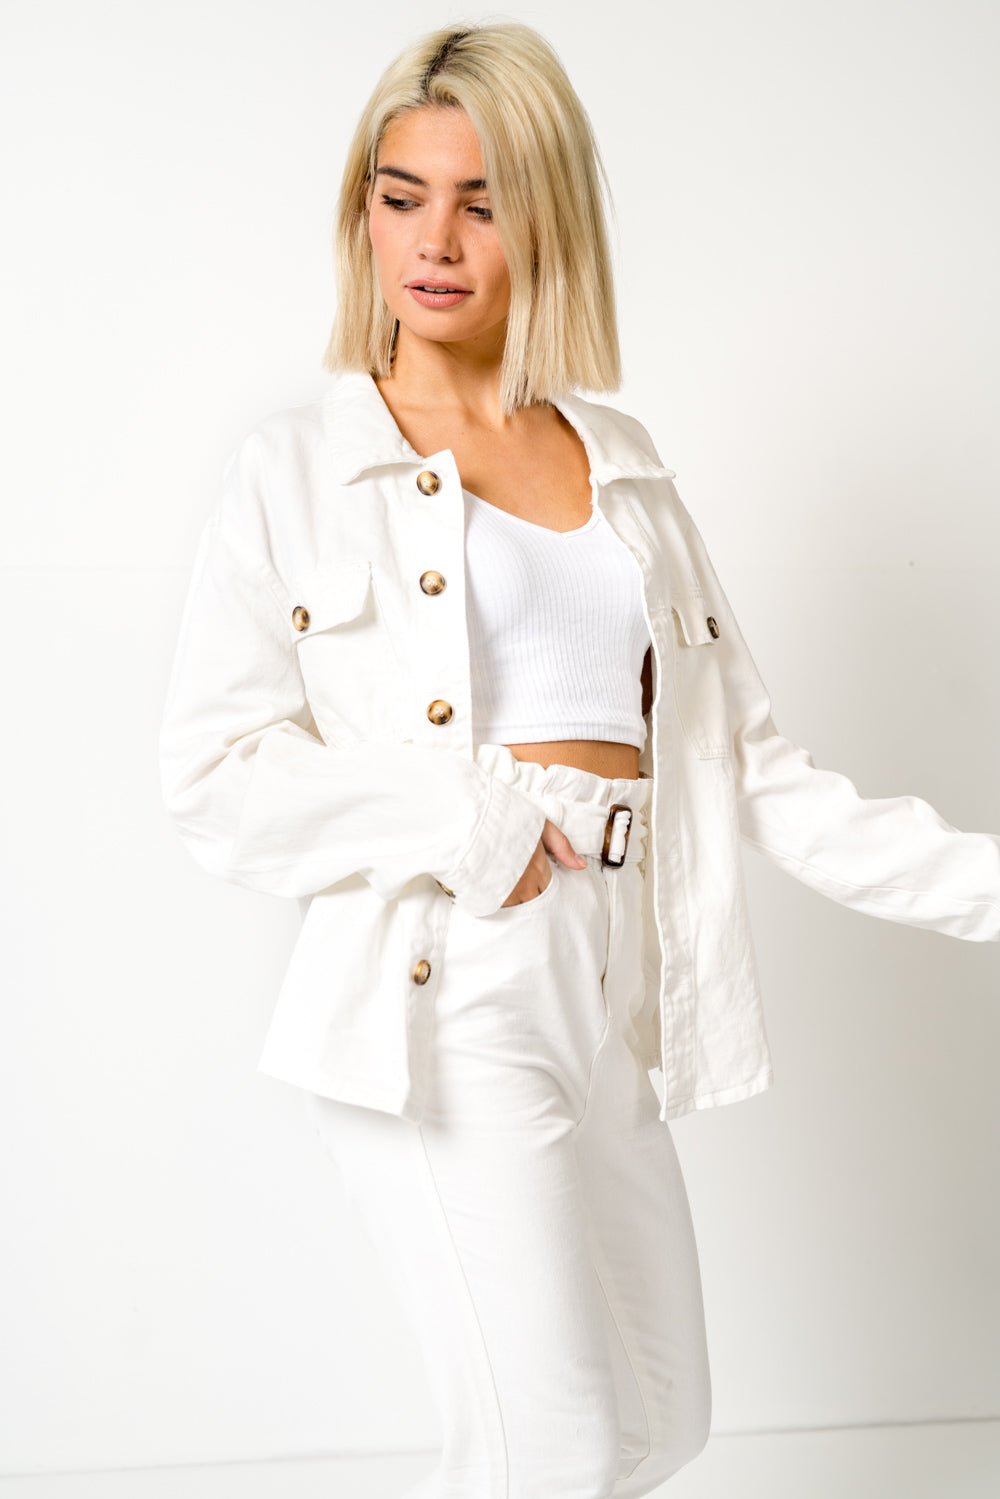 FAE LONDON - STAMFORD 90S WHITE DENIM JACKET